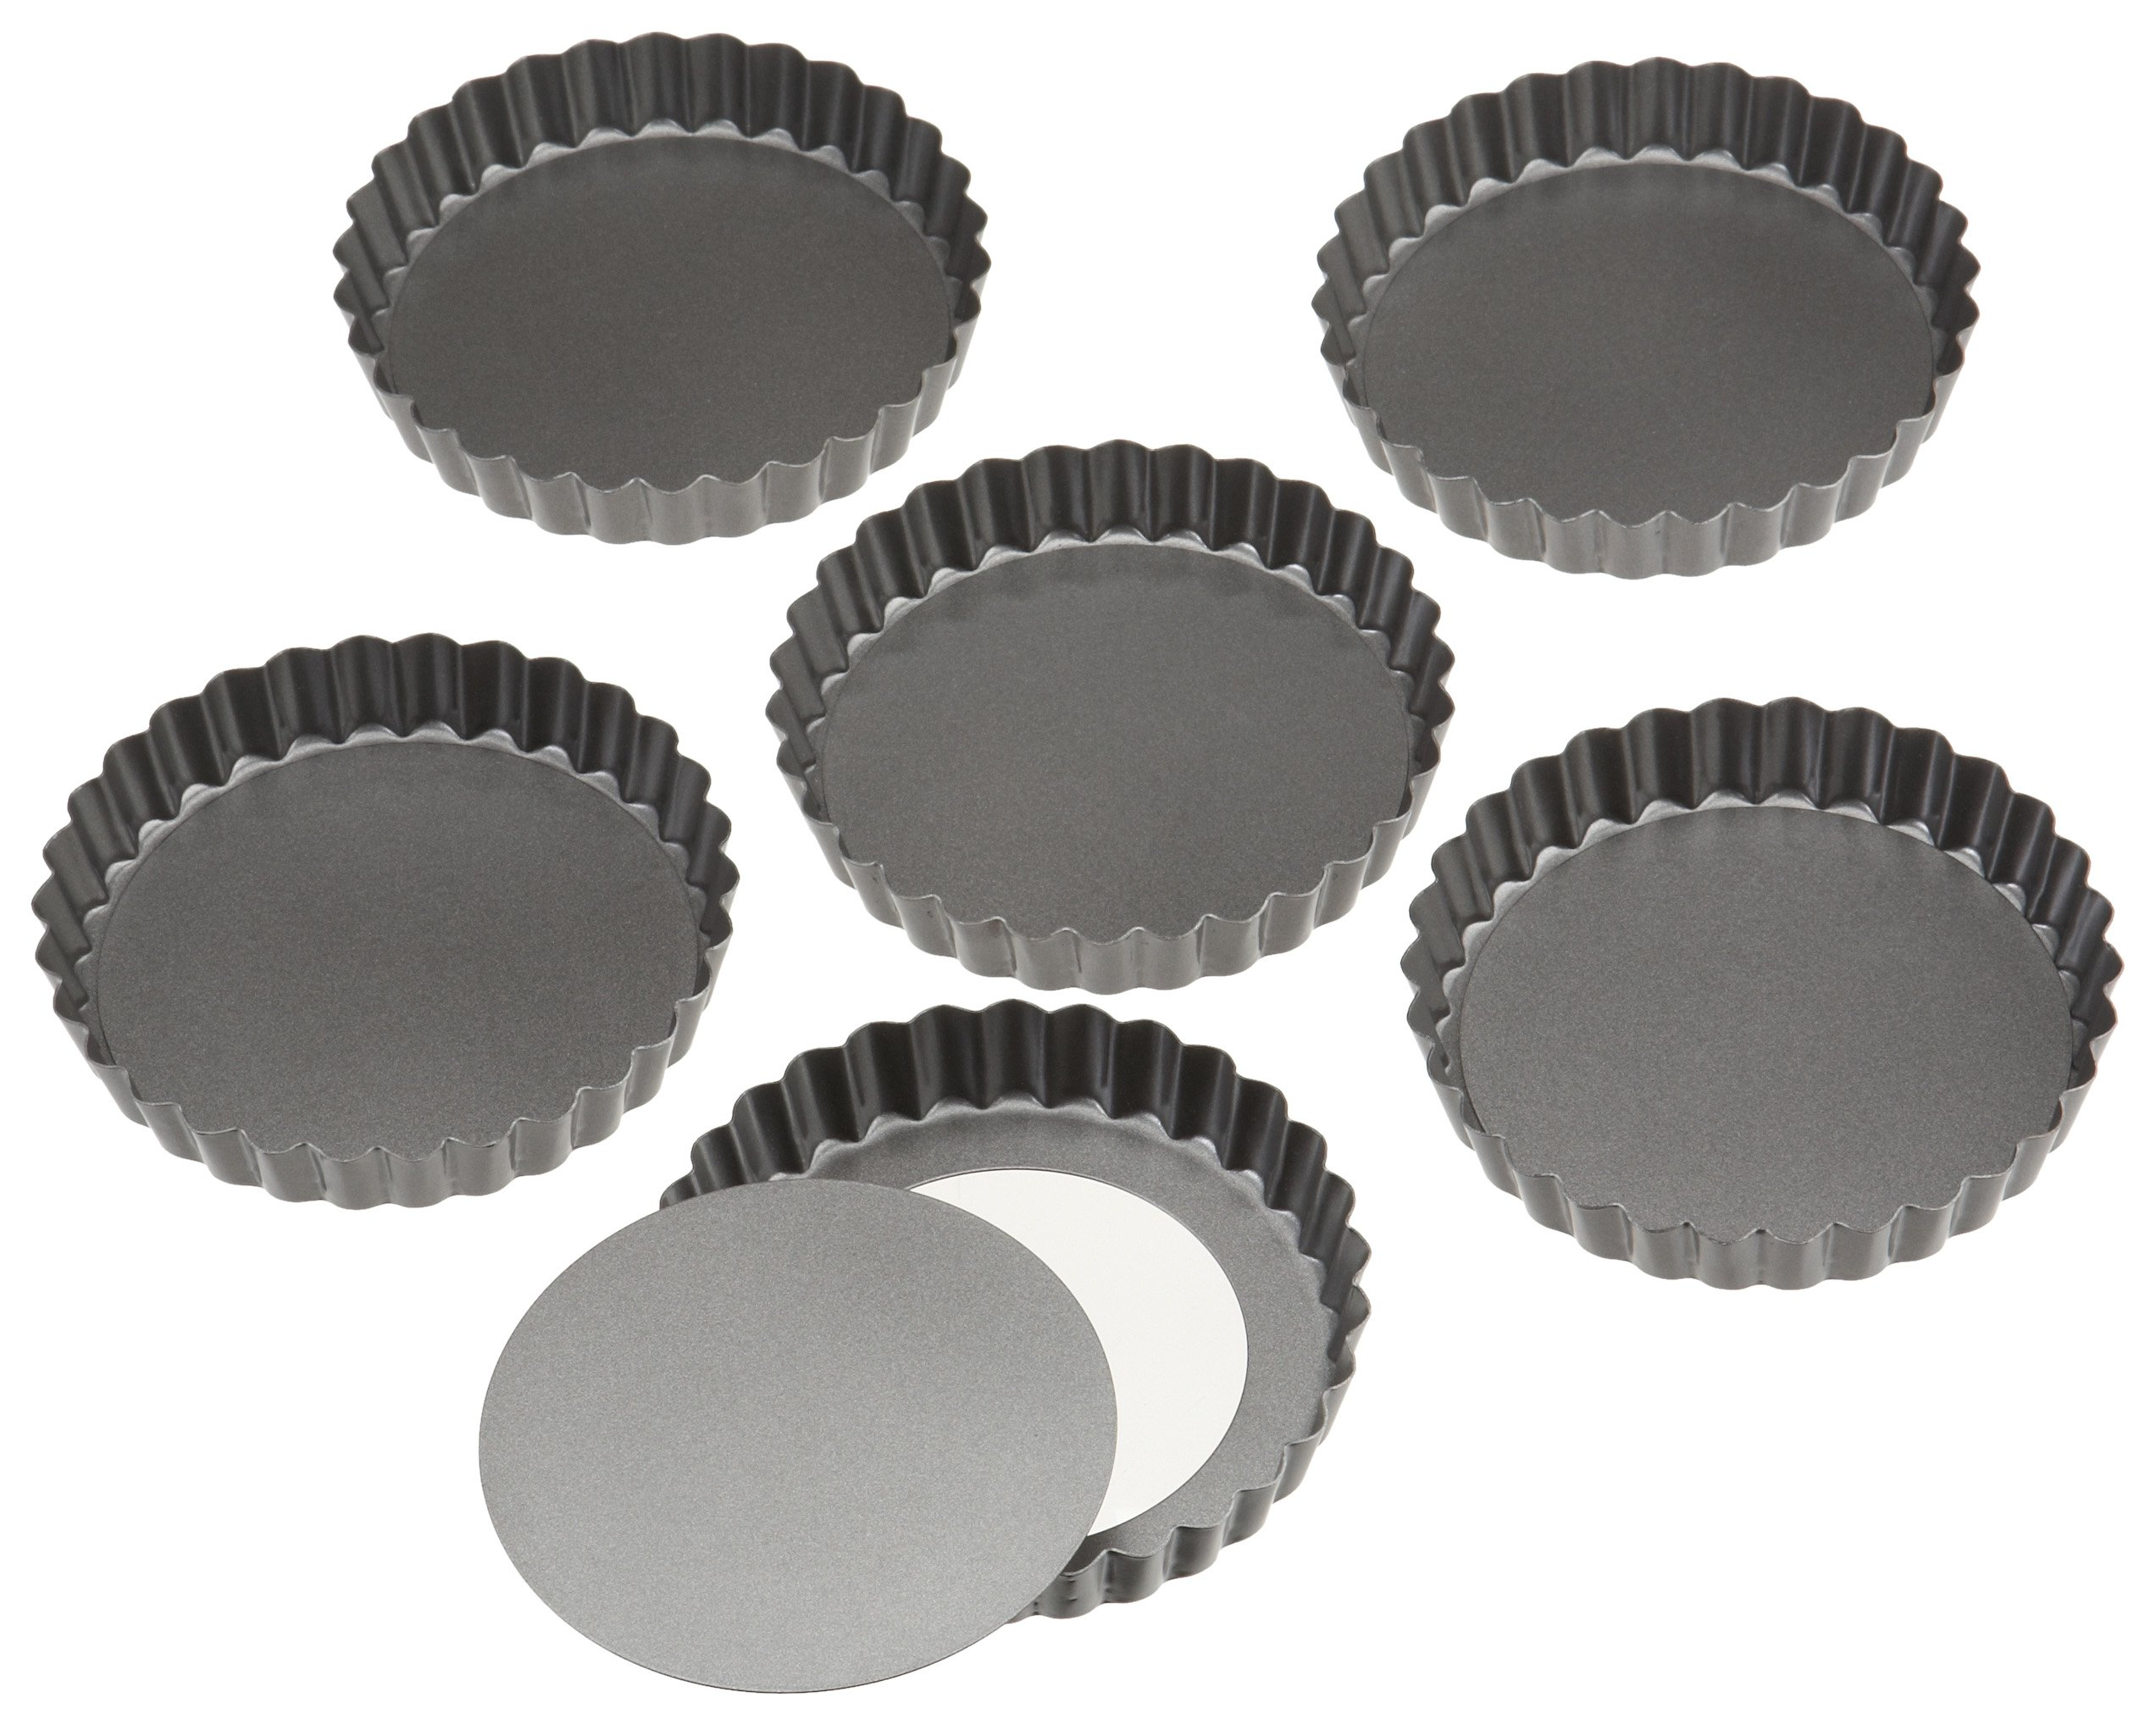 Wilton Perfect Results 4.75 Inch Round Tart/Quiche Pan, Set of 6 by Wilton (Image #2)